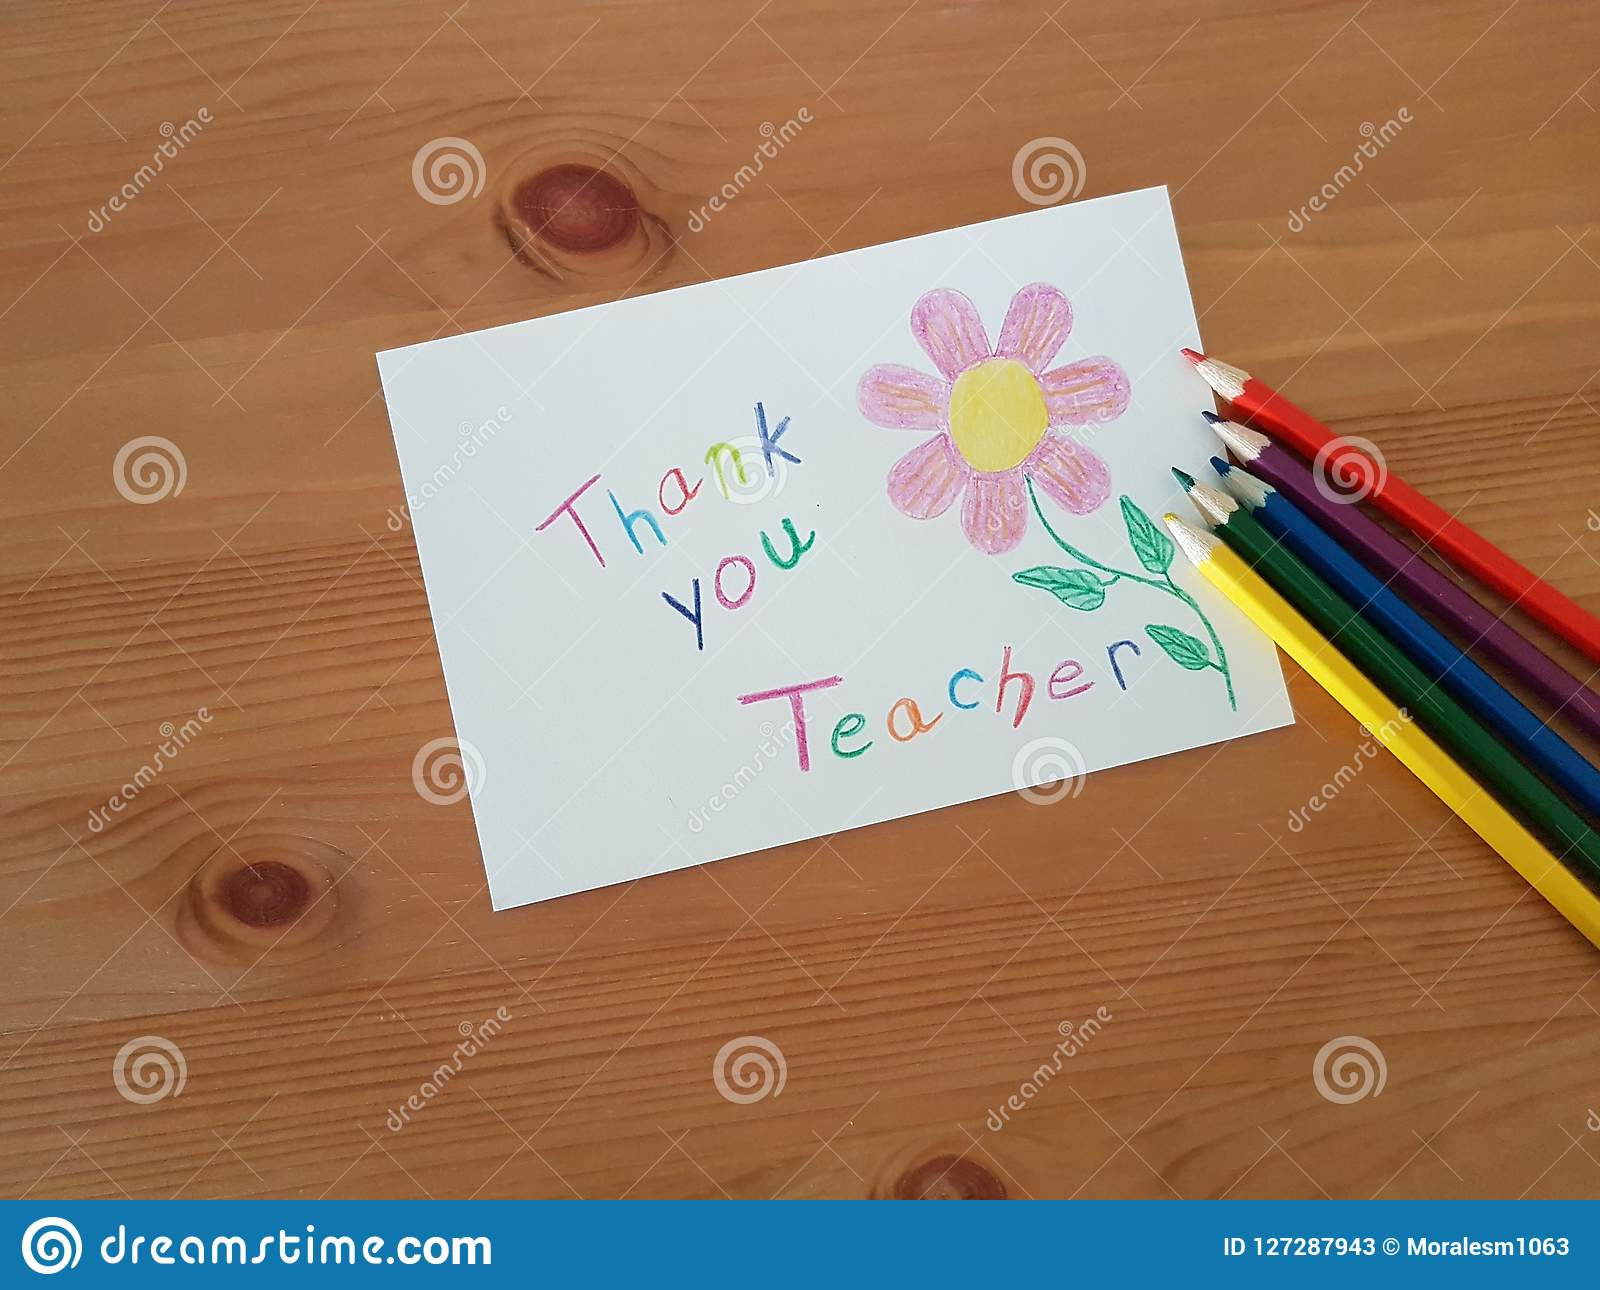 Thank you teacher stock image image of days best markers 127287943